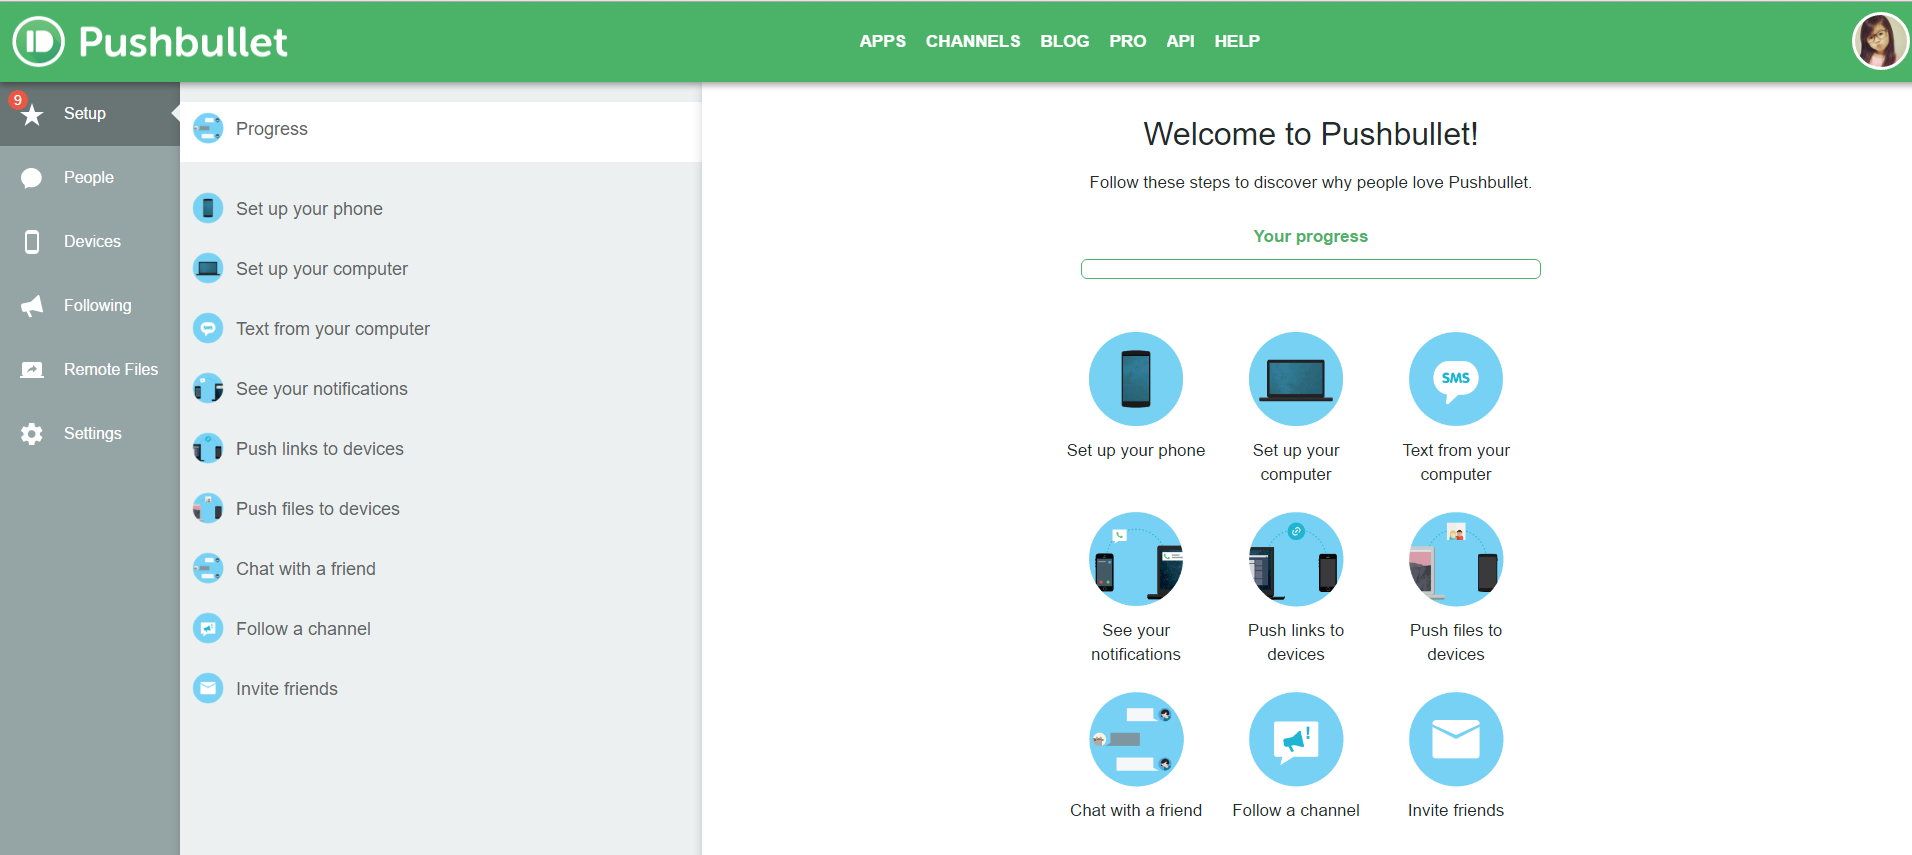 How to Use Pushbullet